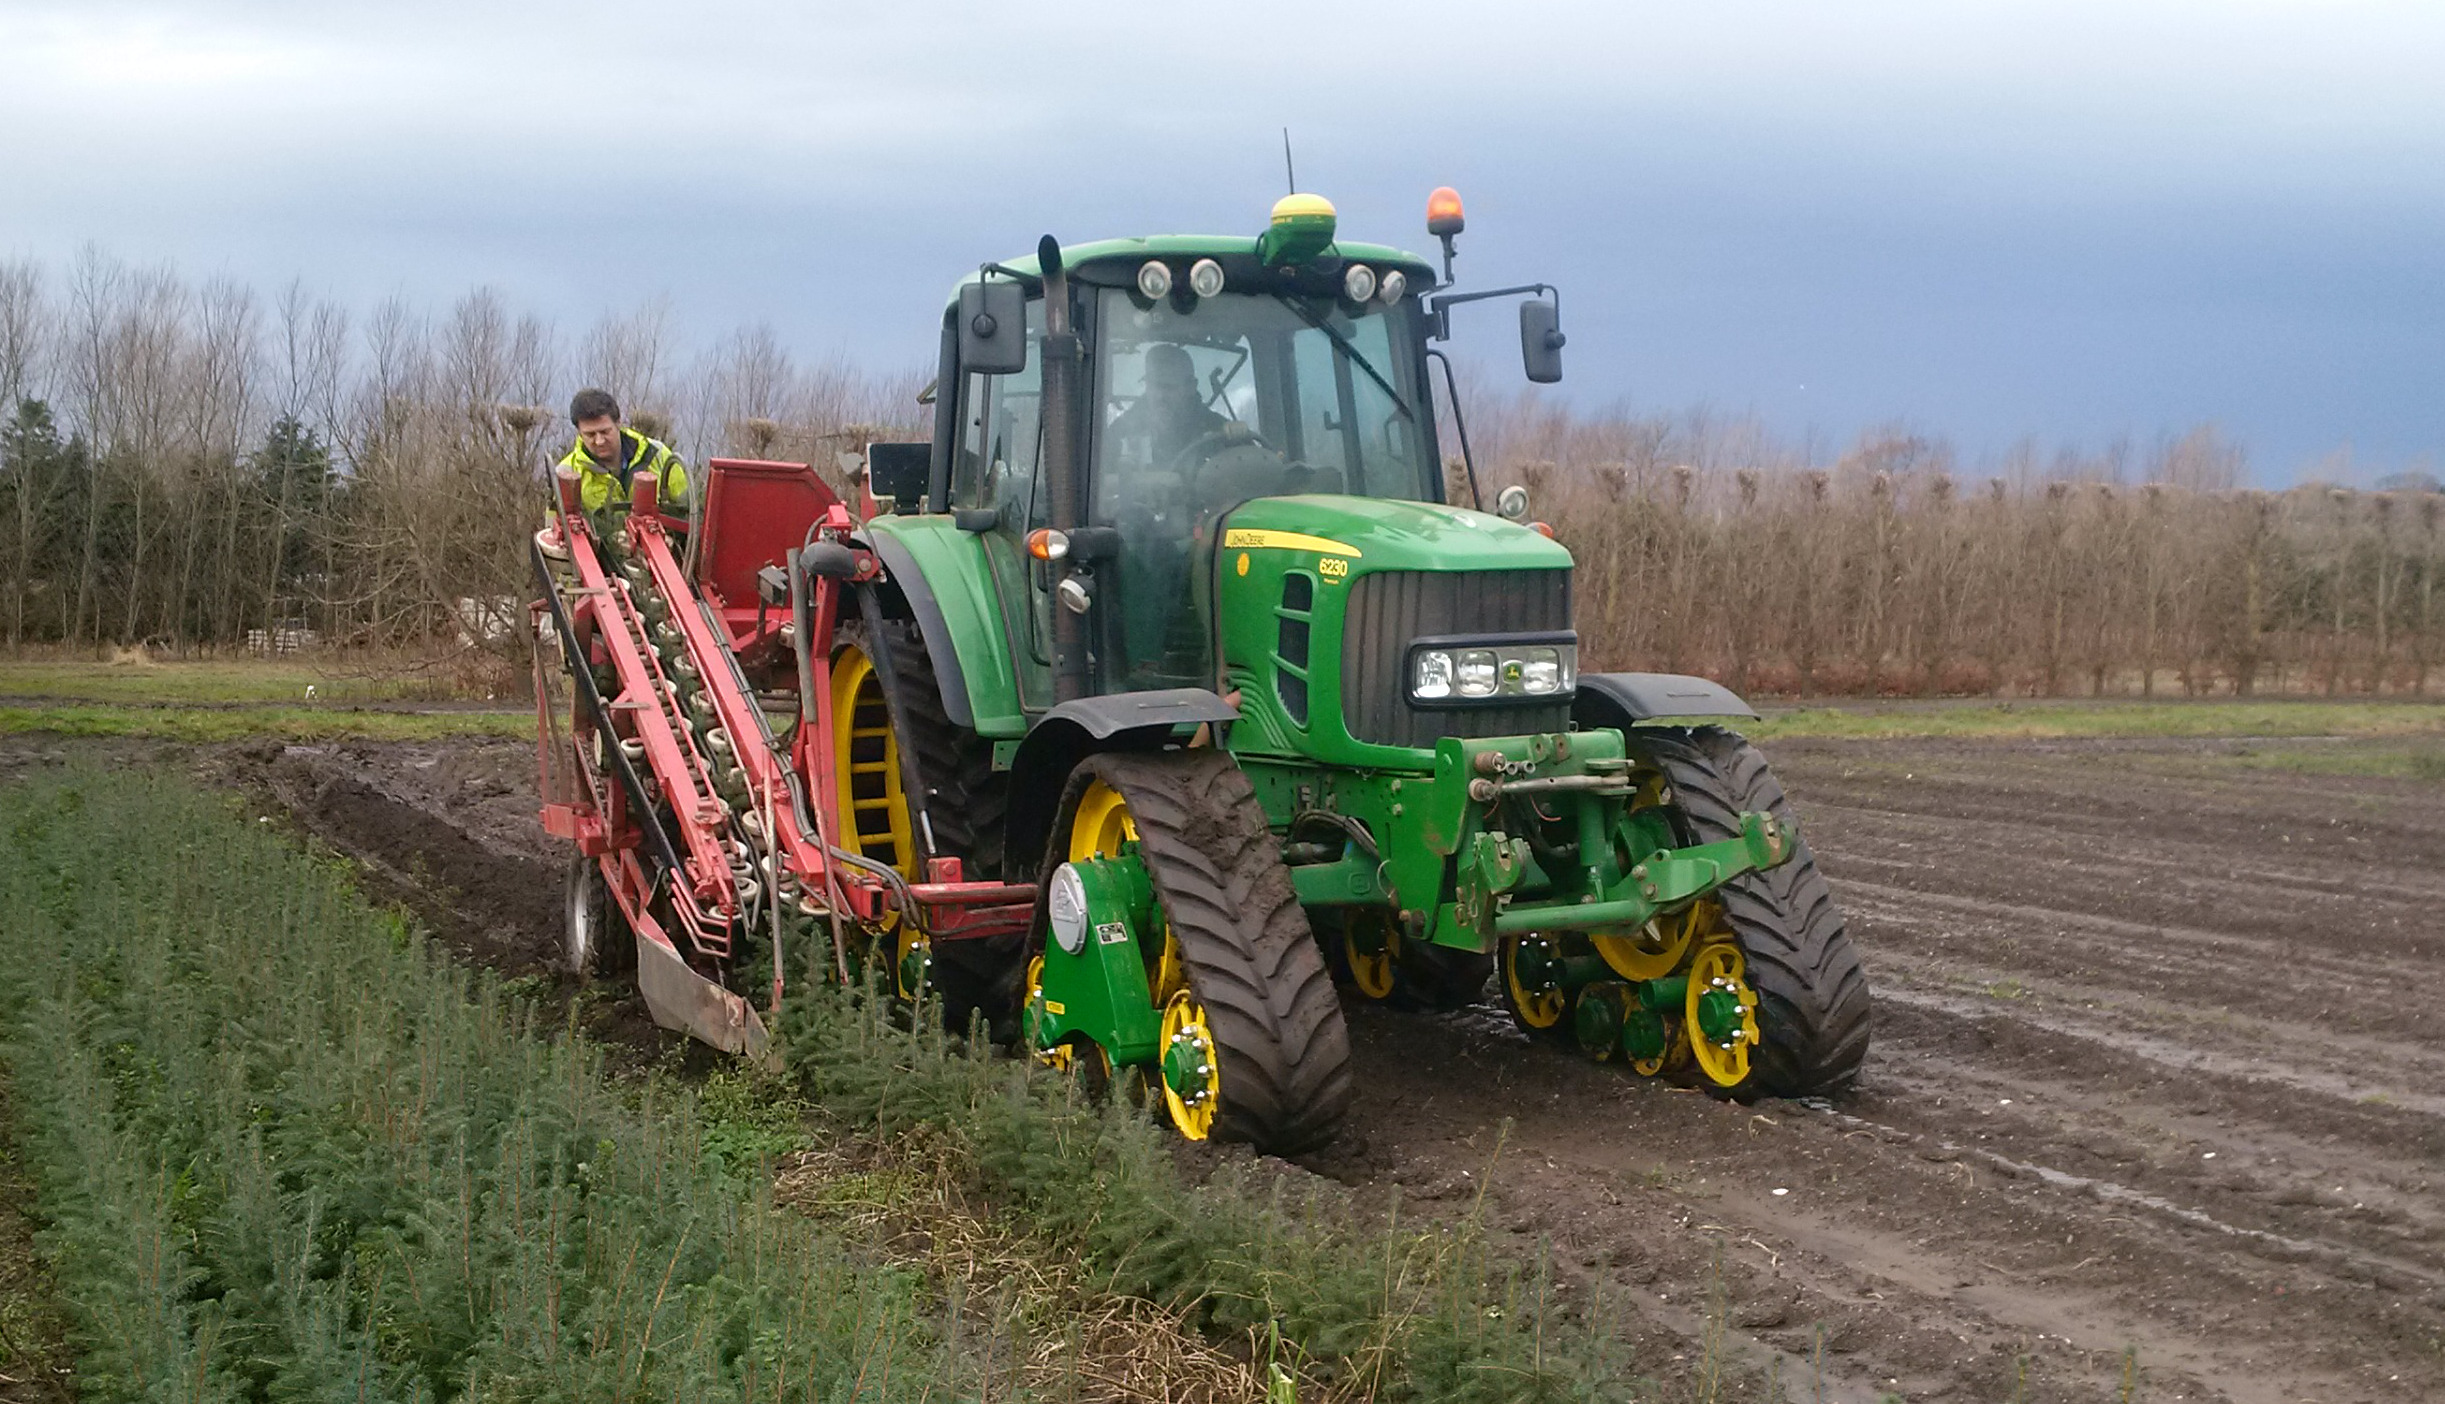 Poluzzi narrow tracks fitted to JD harvesting trees in Northumberland